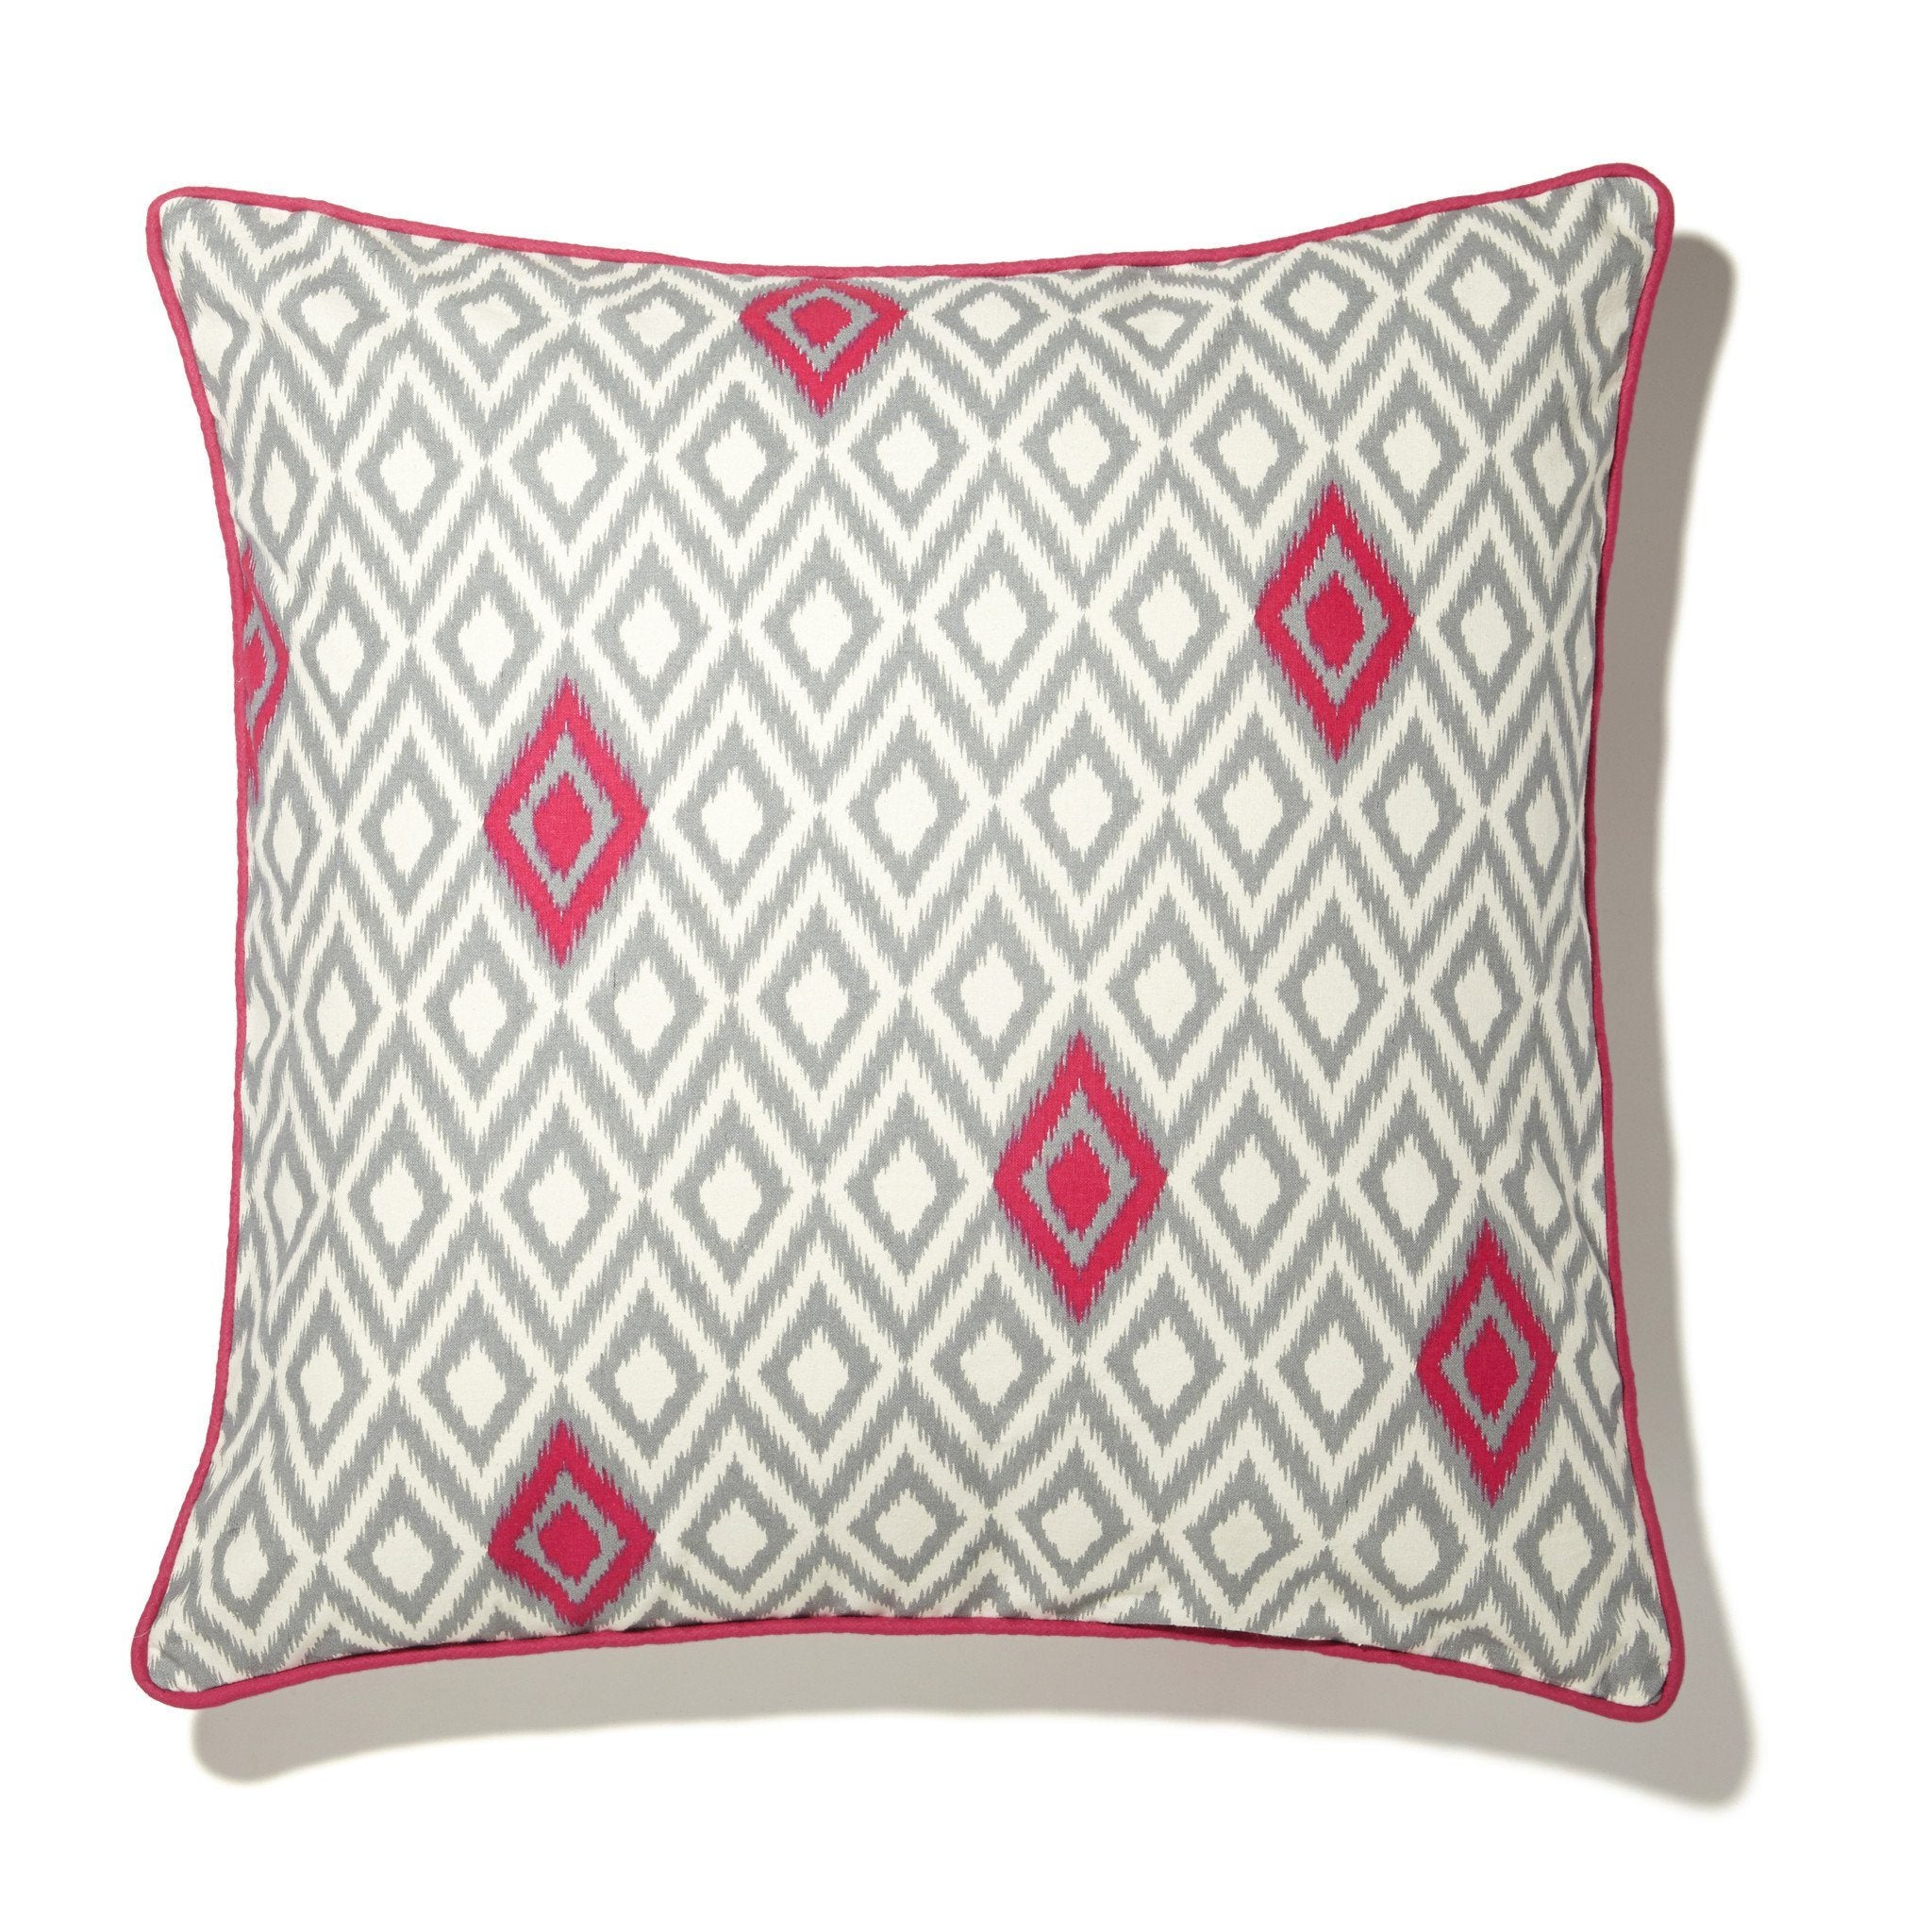 Deree Throw Pillow - Cushions - Stitches and Tweed - Naiise